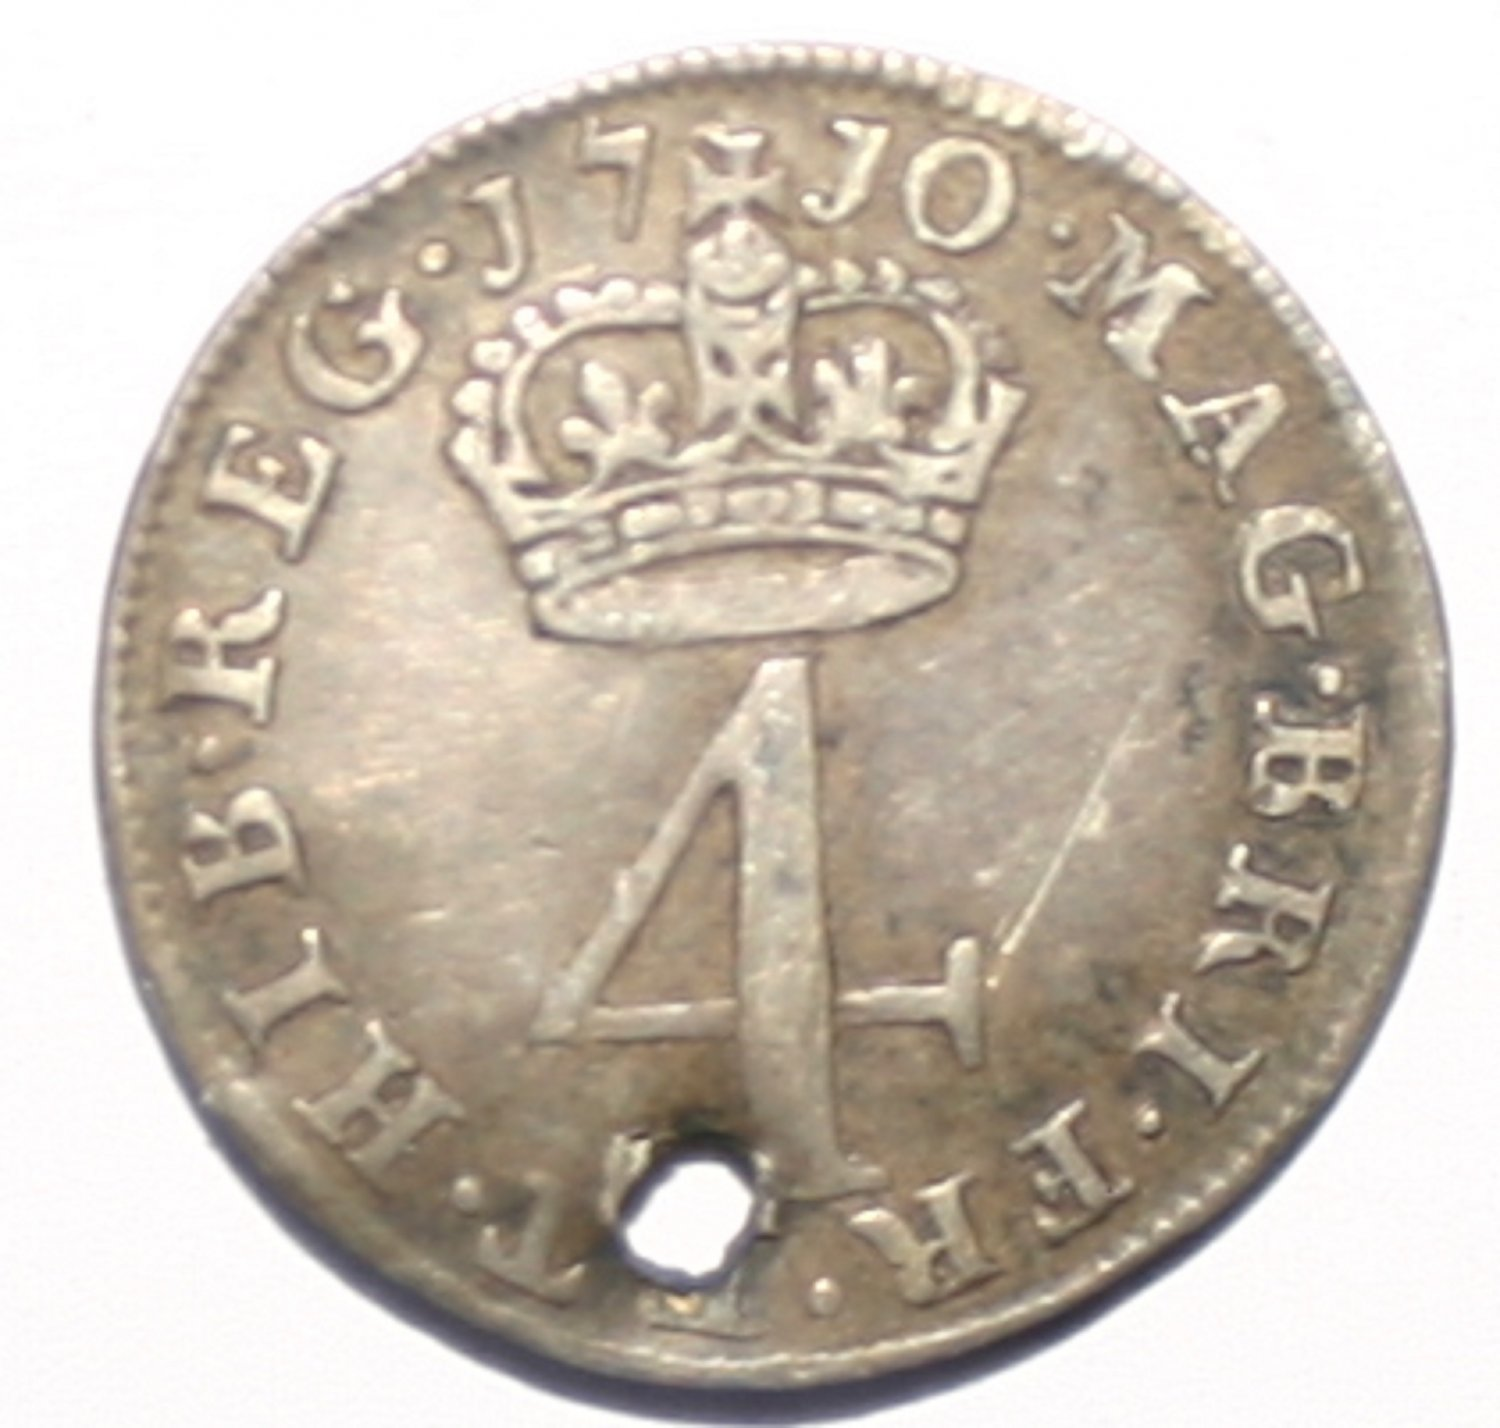 Queen Anne Four Pence Groat 1710 Coin Rare Collectors Item